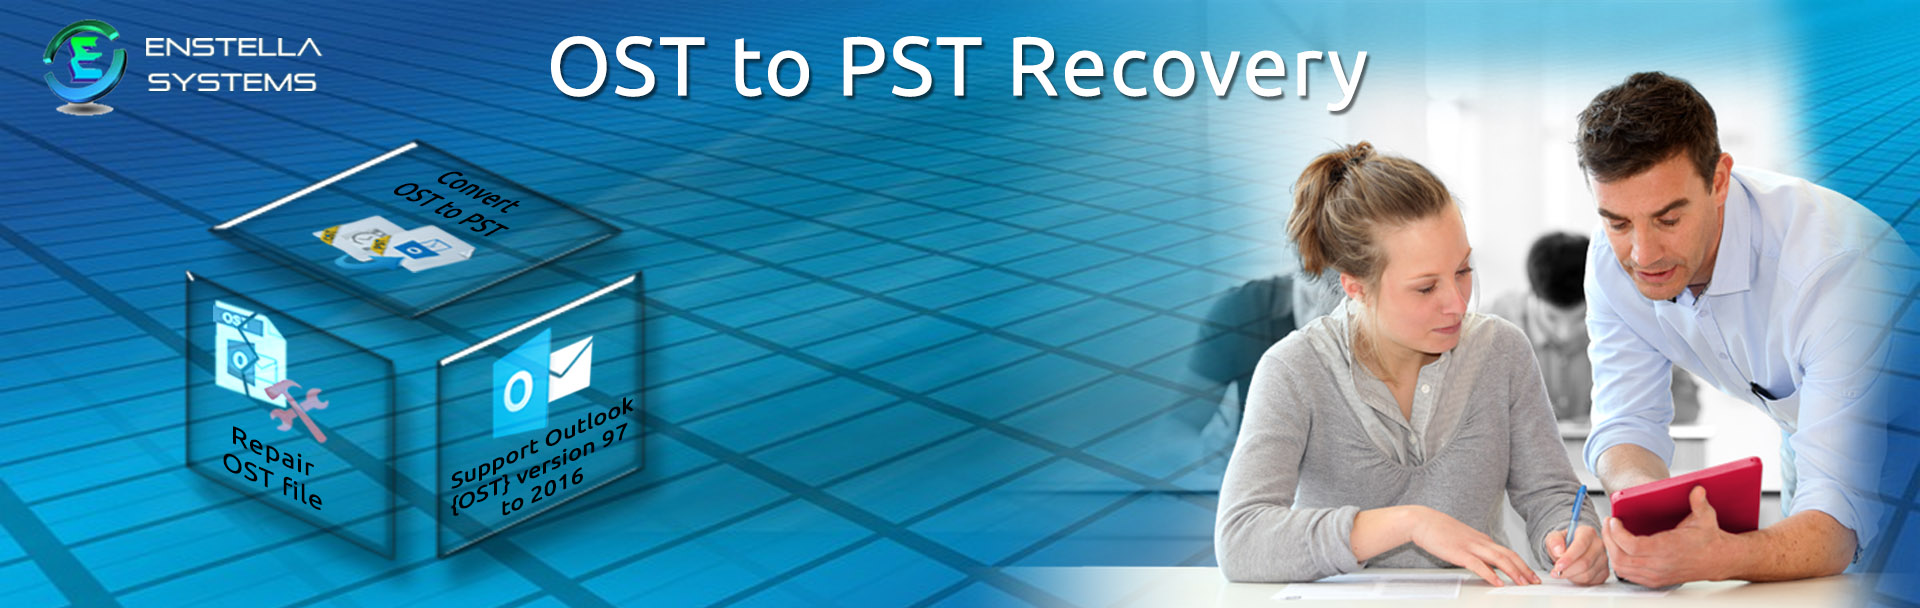 how to change outlook ost file location